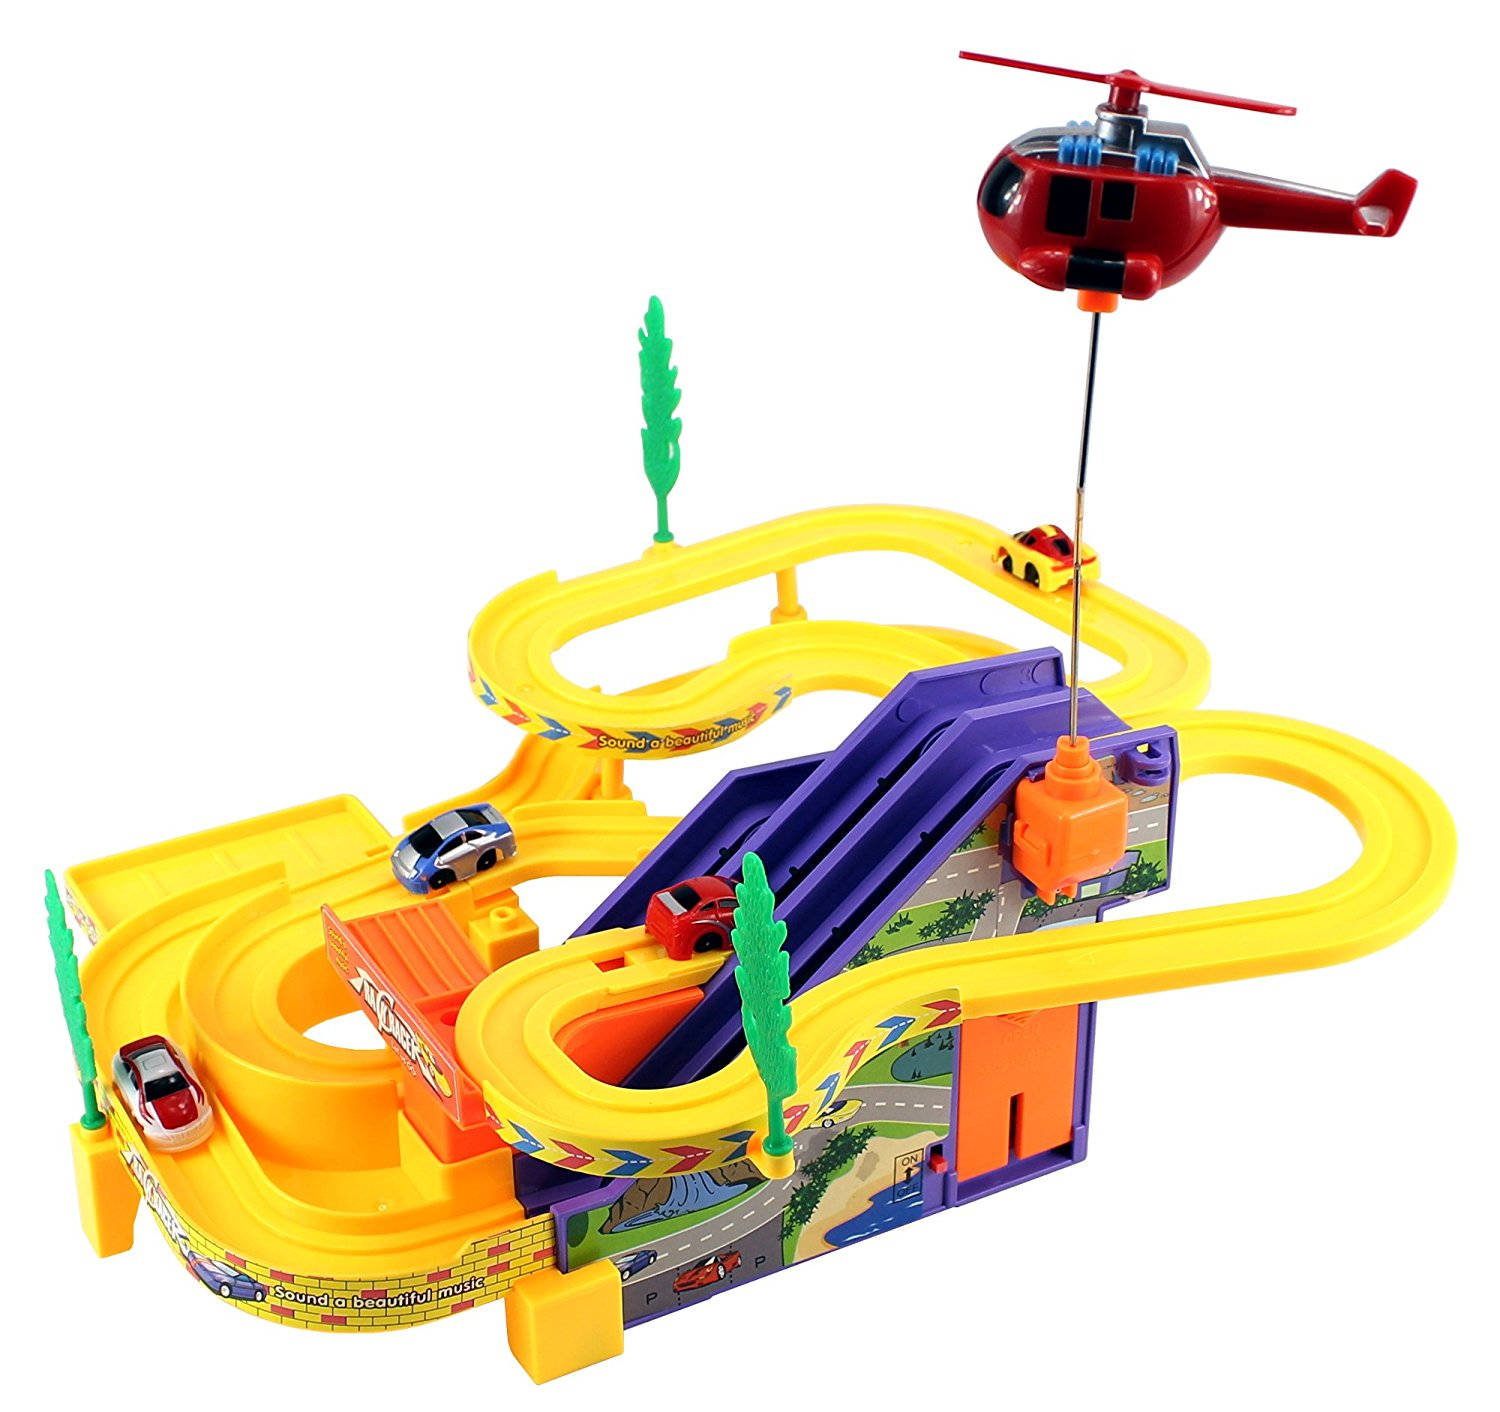 Track Racer Car & Helicopter Children's Kid's Battery Operated Toy Vehicle Playset